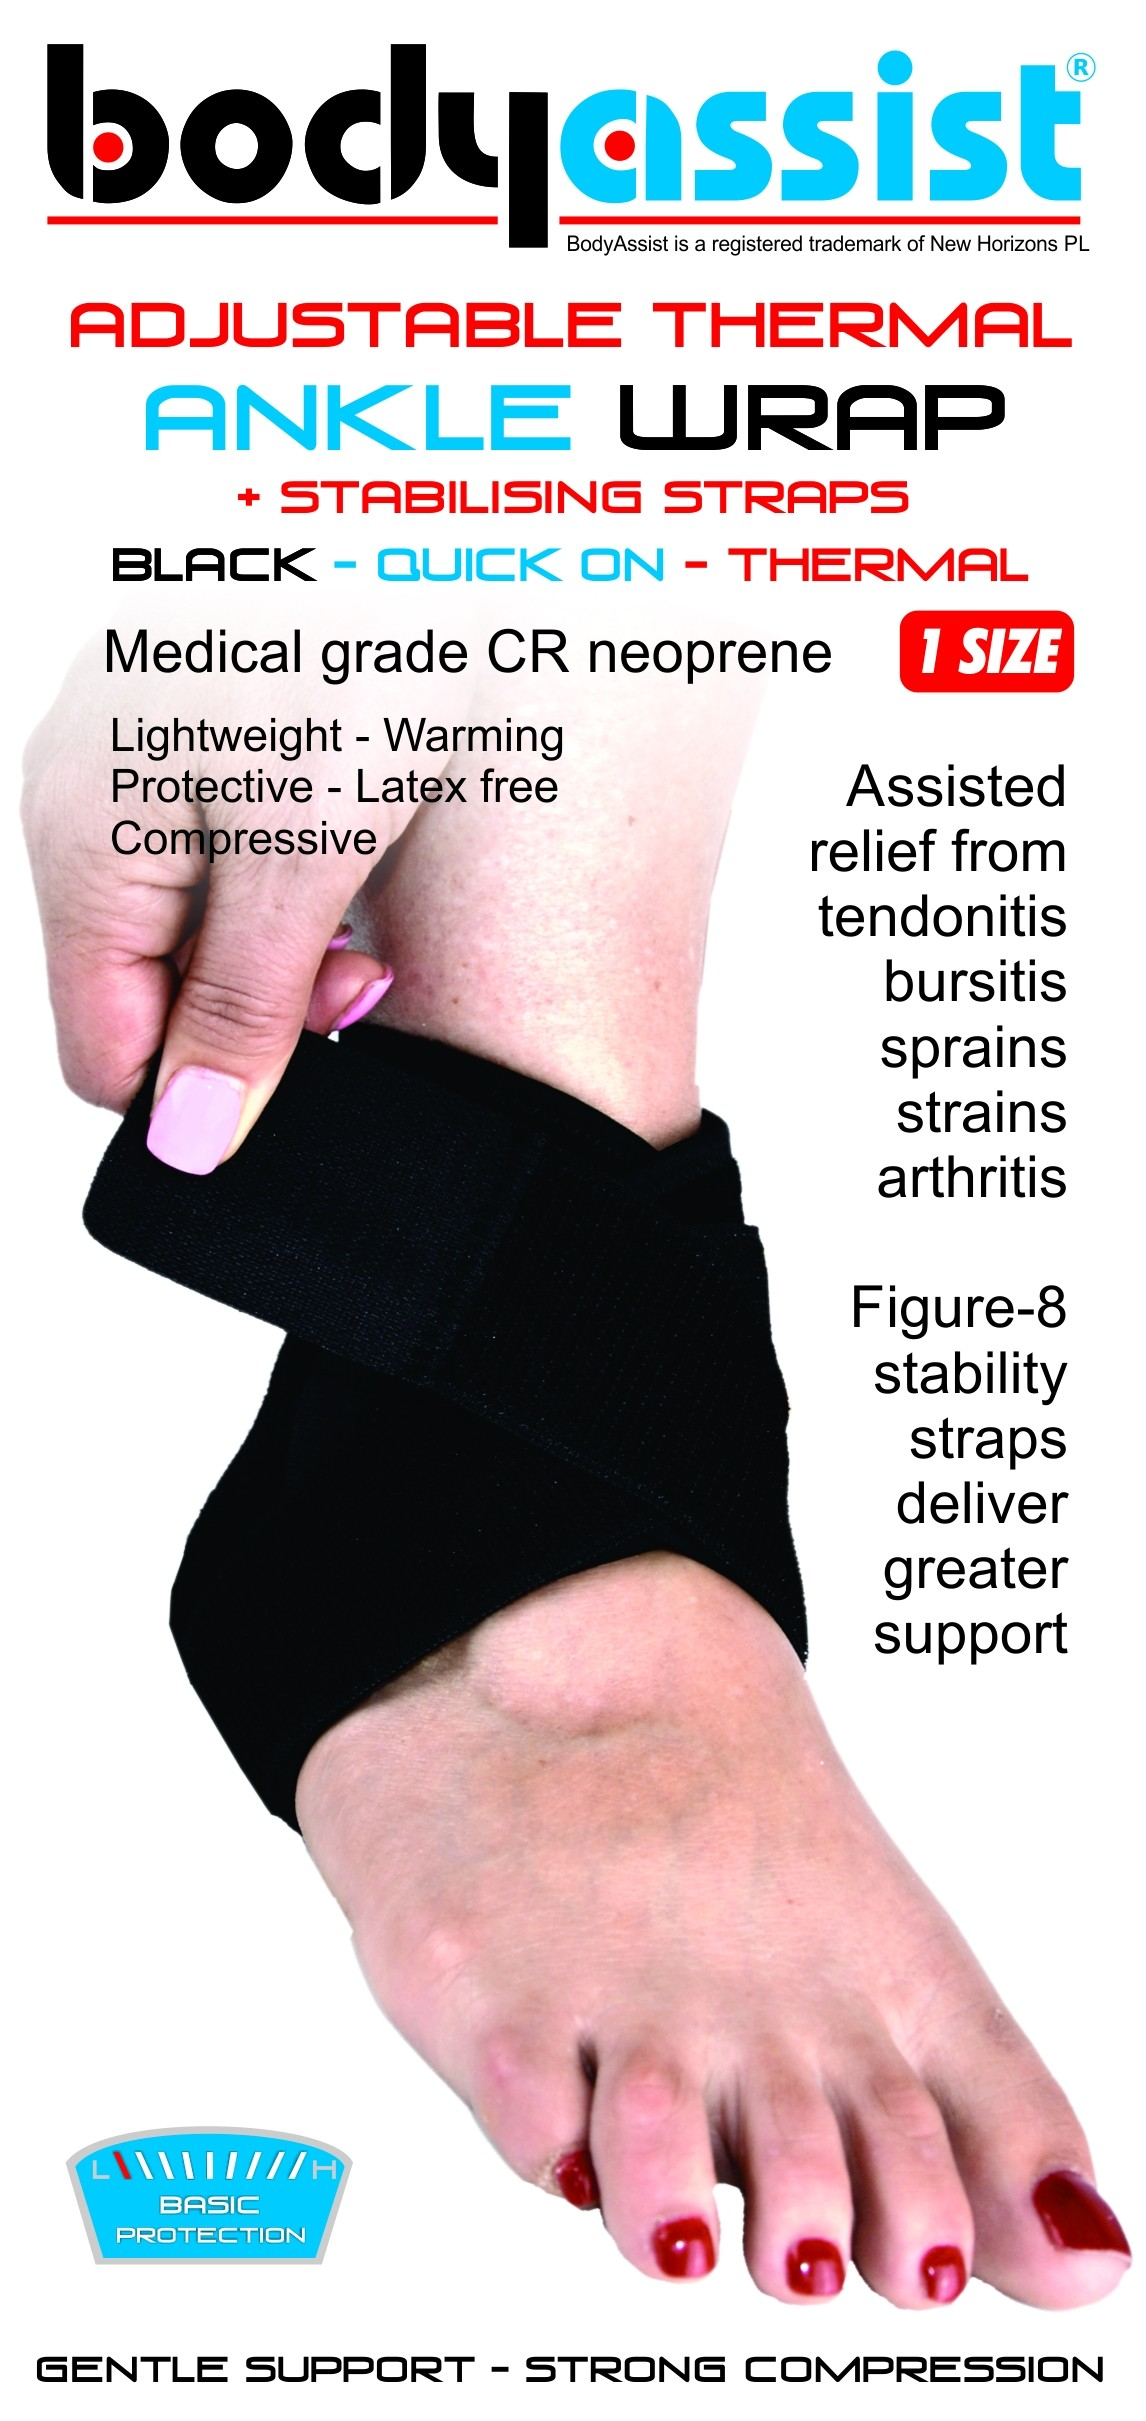 BA One Size Thermal Ankle Wrap with stabilzer straps